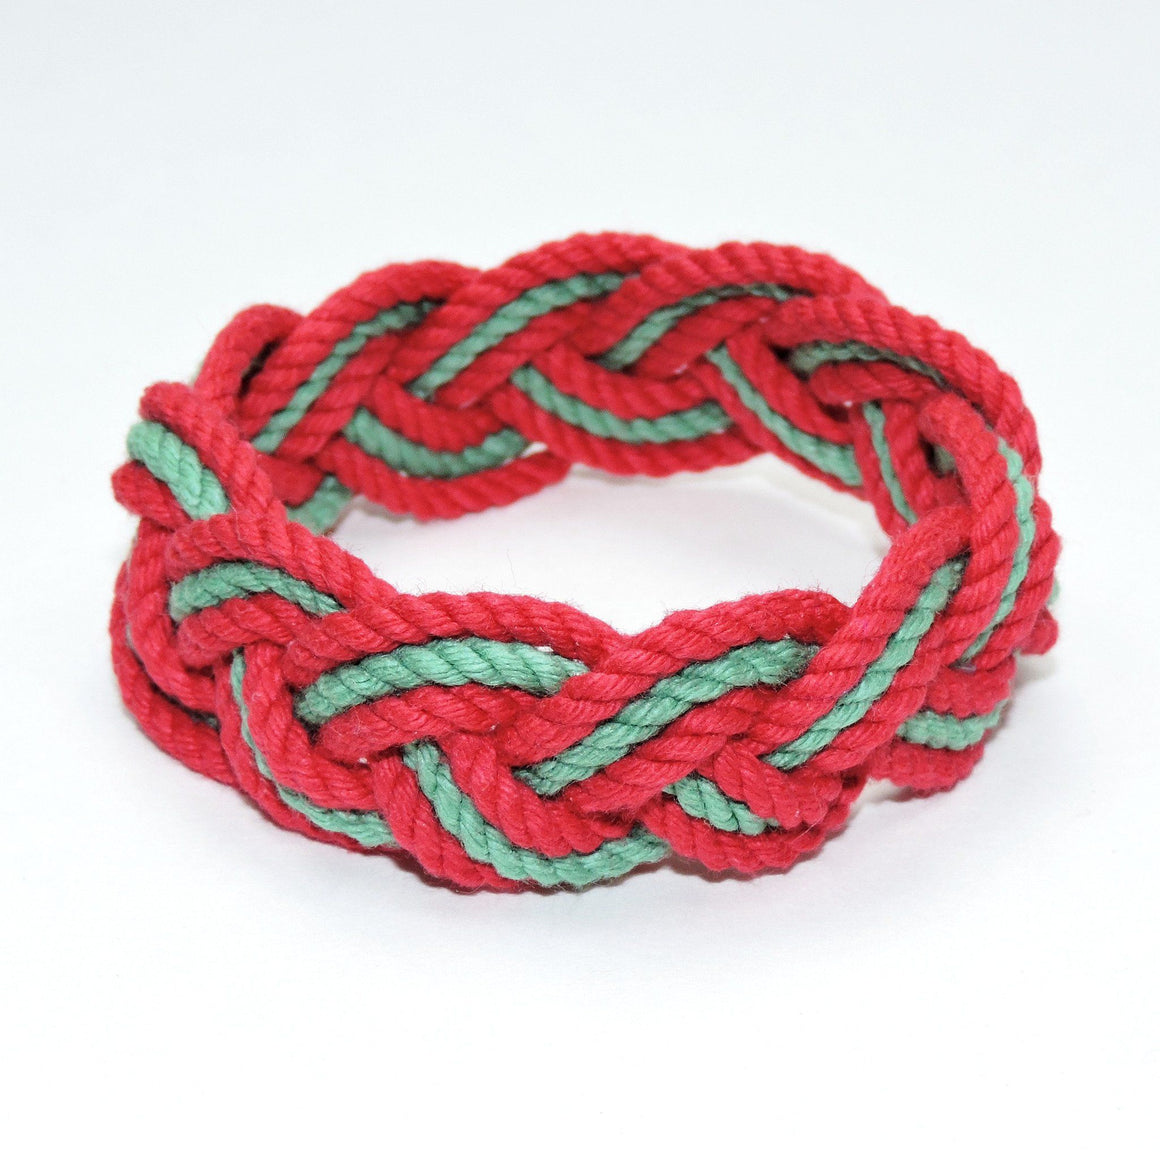 Striped Sailor Knot Bracelet, Christmas Colors - Mystic Knotwork  - 3